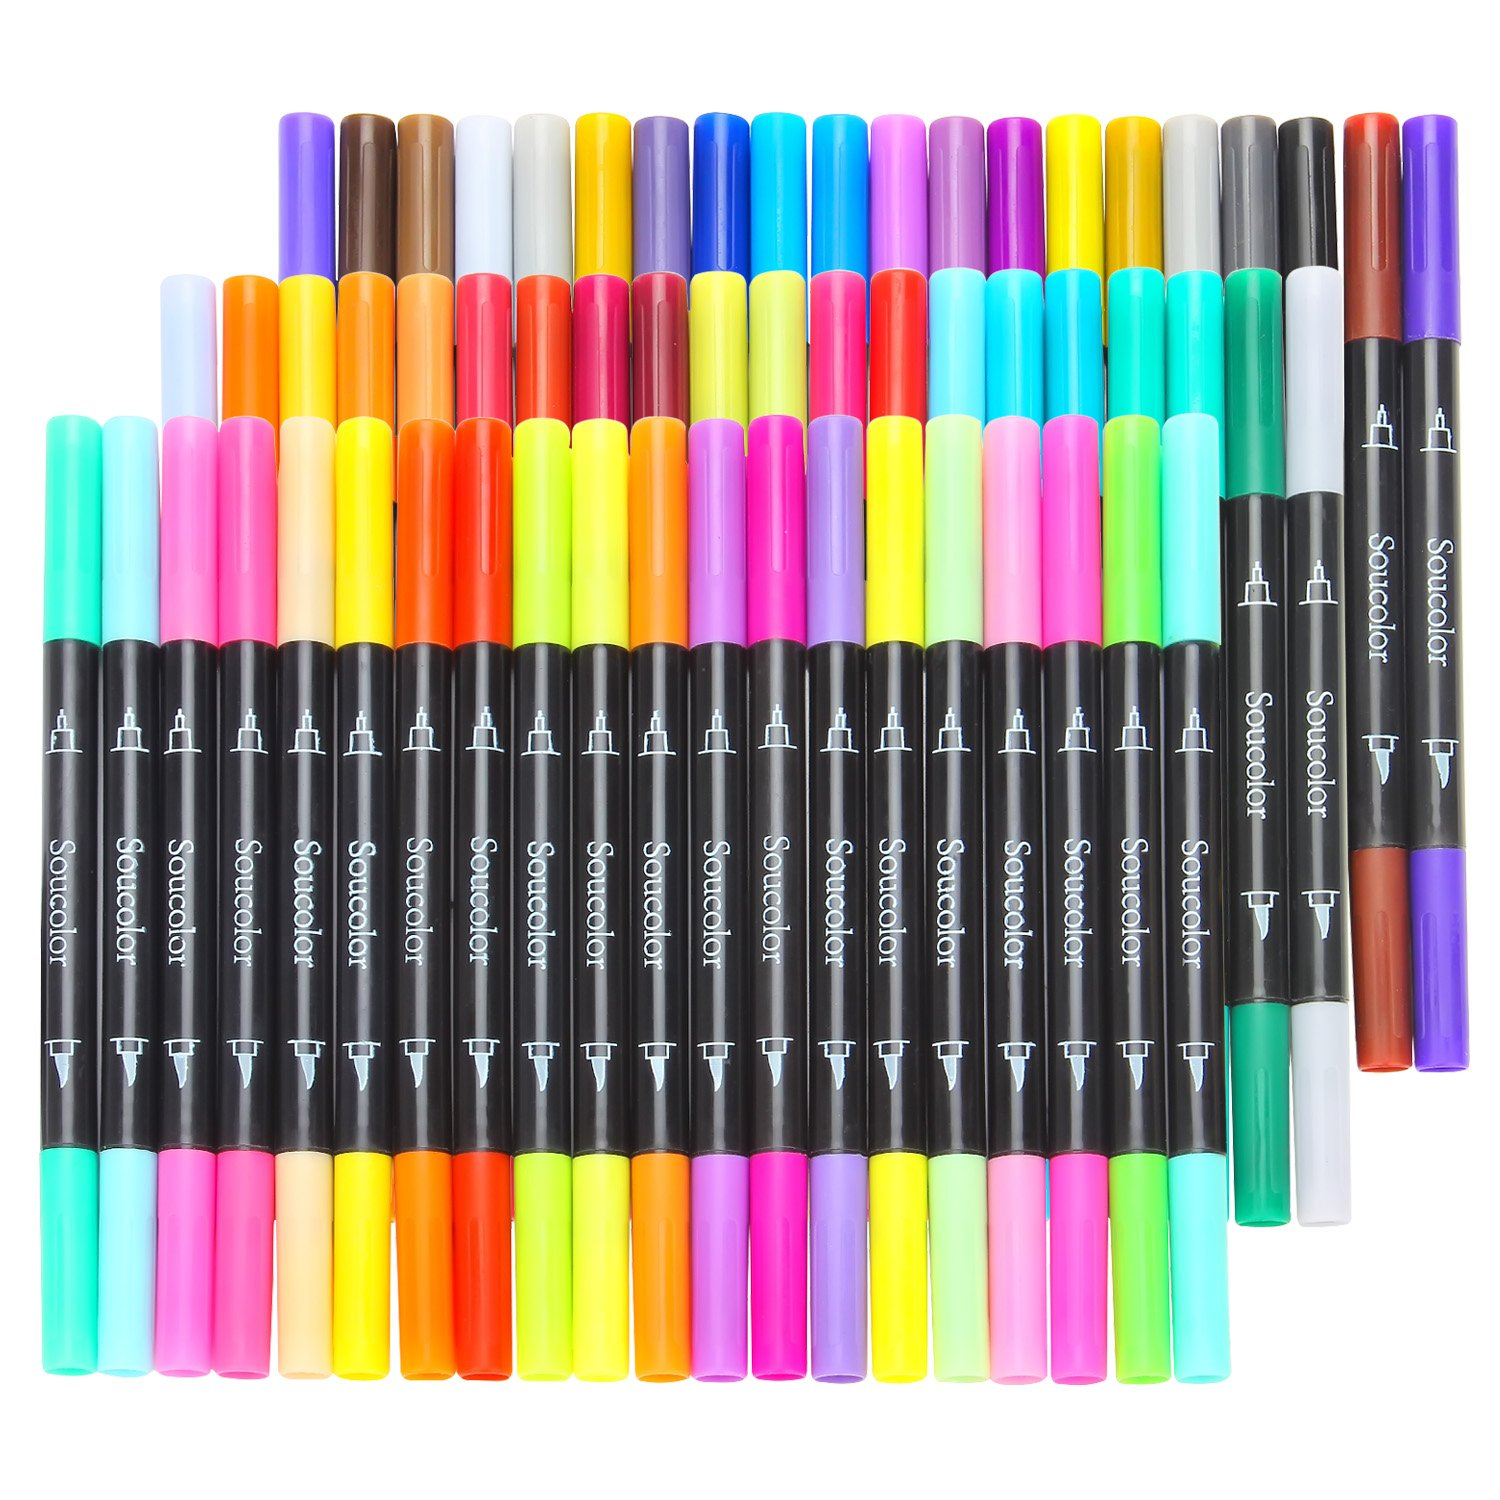 Soucolor 60 Colors Dual Tip Brush Pens with Fineliner Tip 0.4 Art Markers for Adult Coloring Books, Bullet Journal